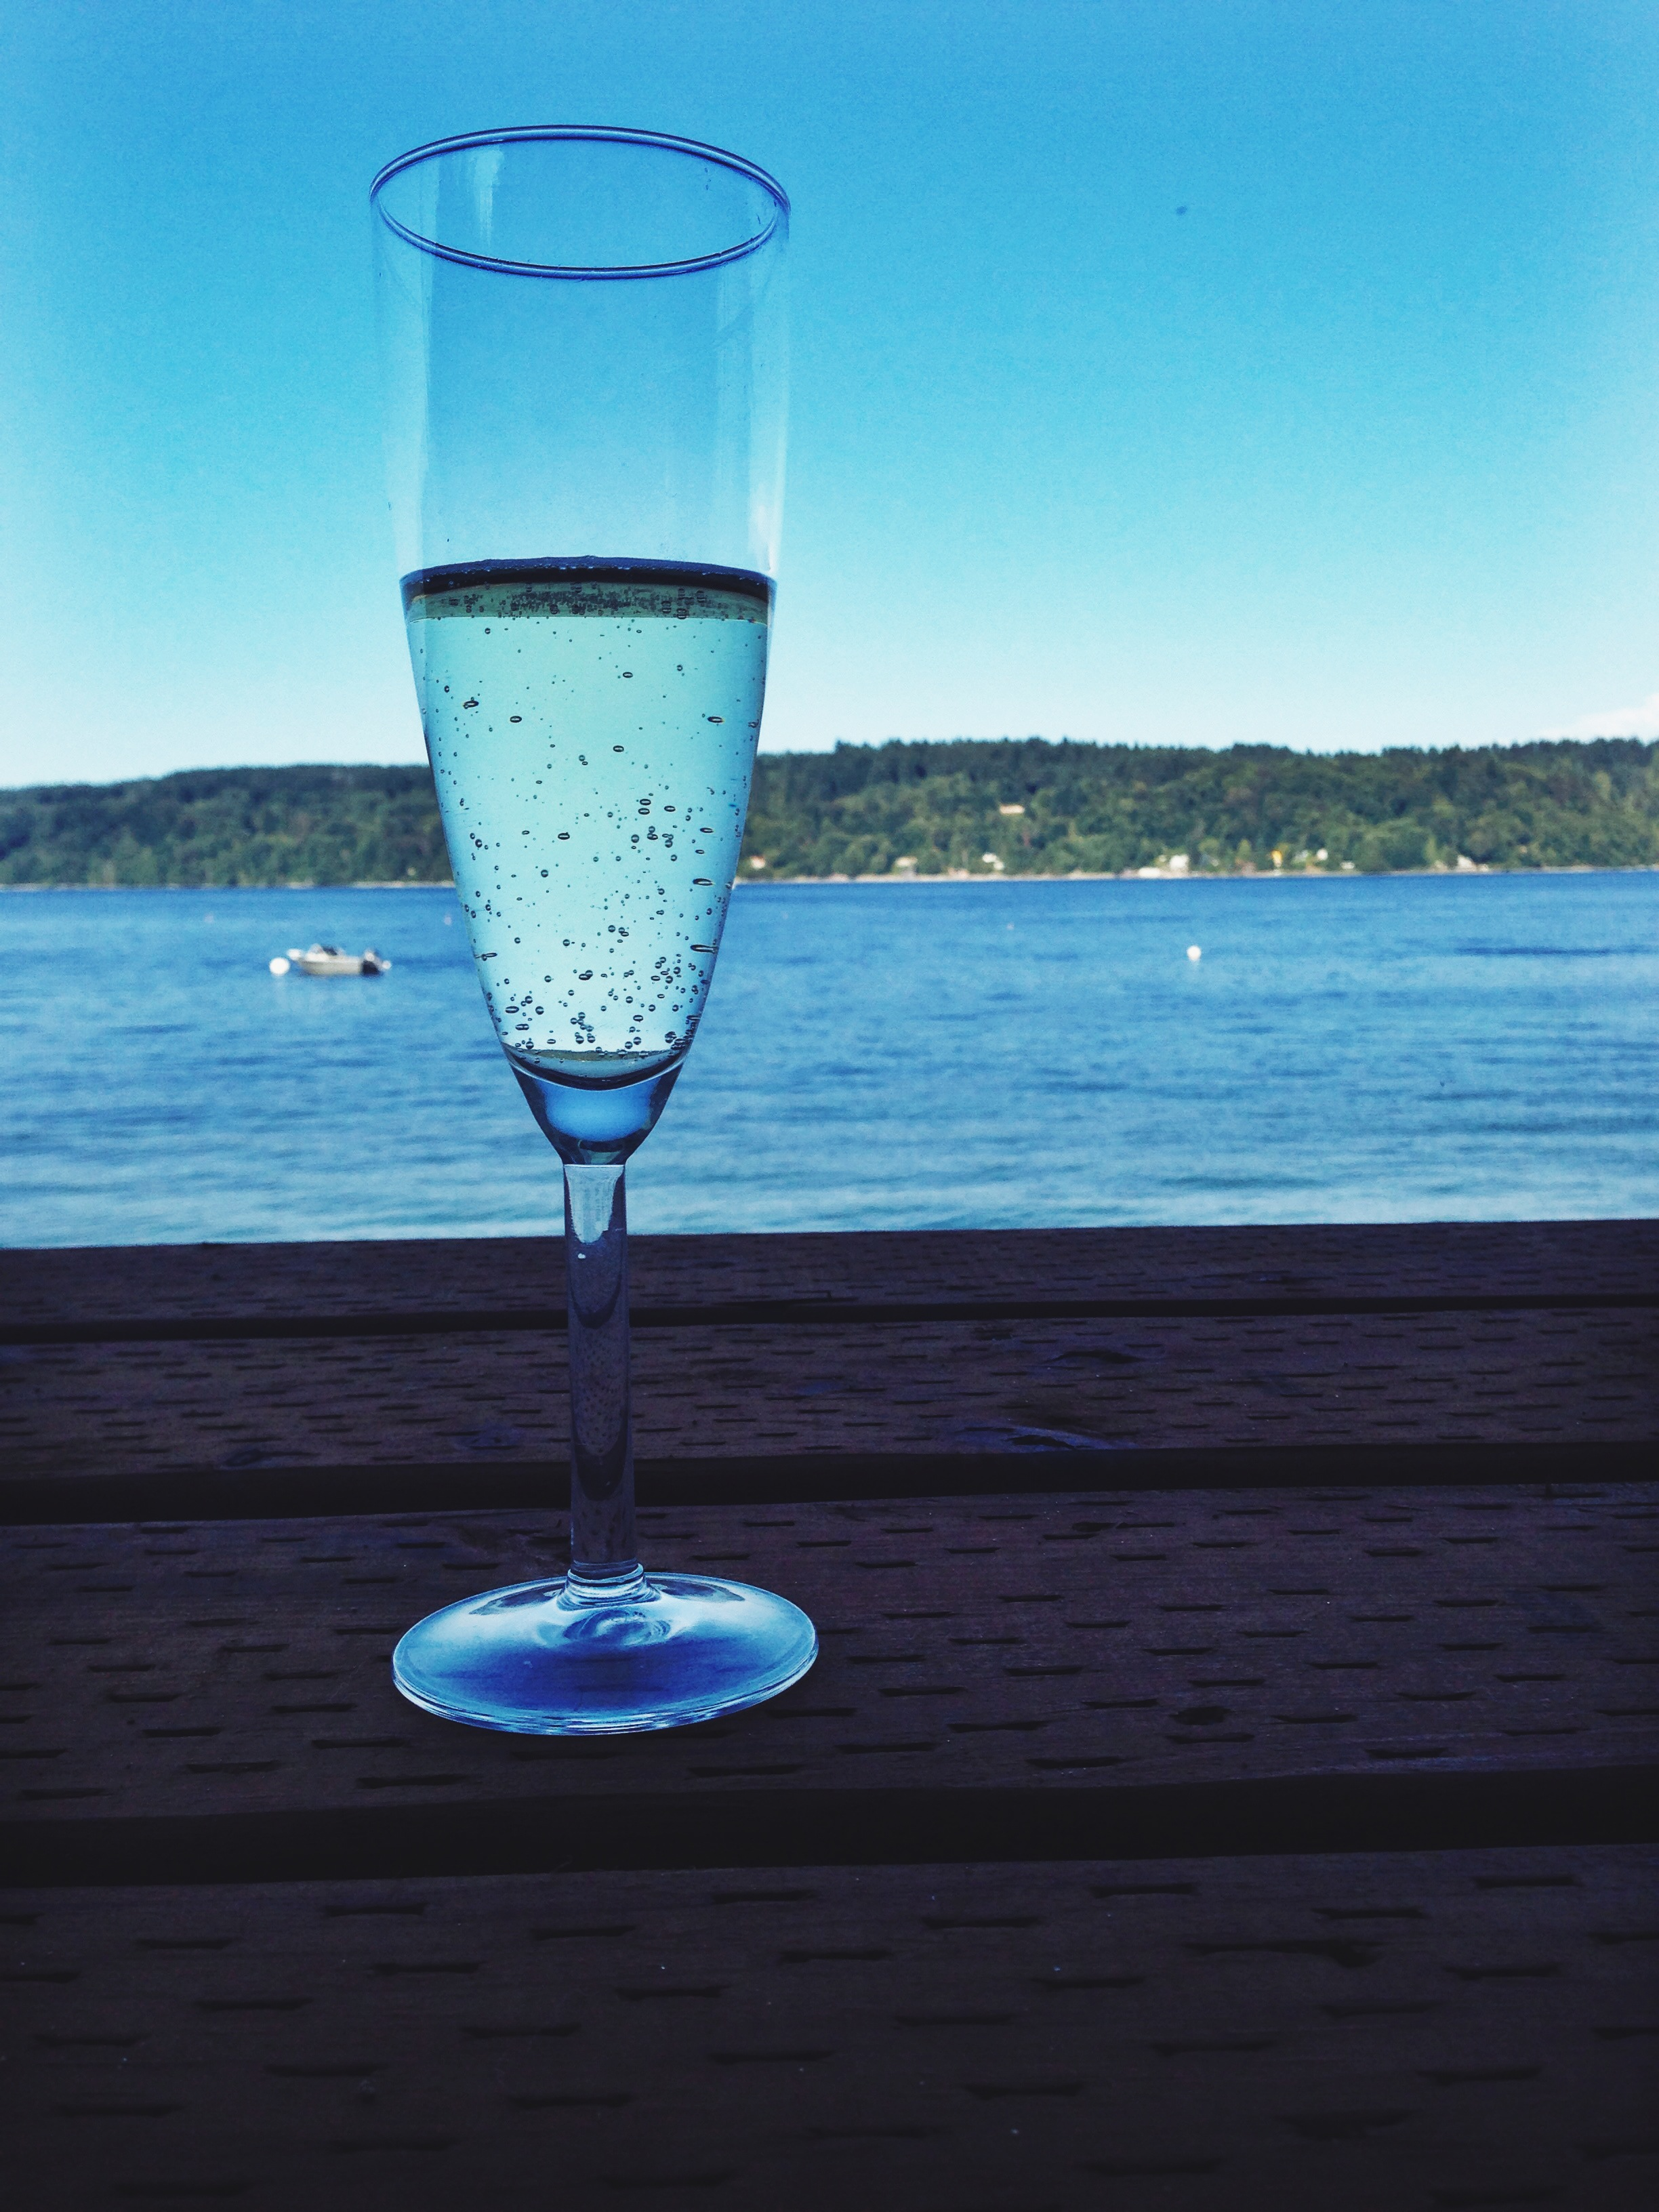 A glass of Moscato D'Asti from Cupcake Vineyards.